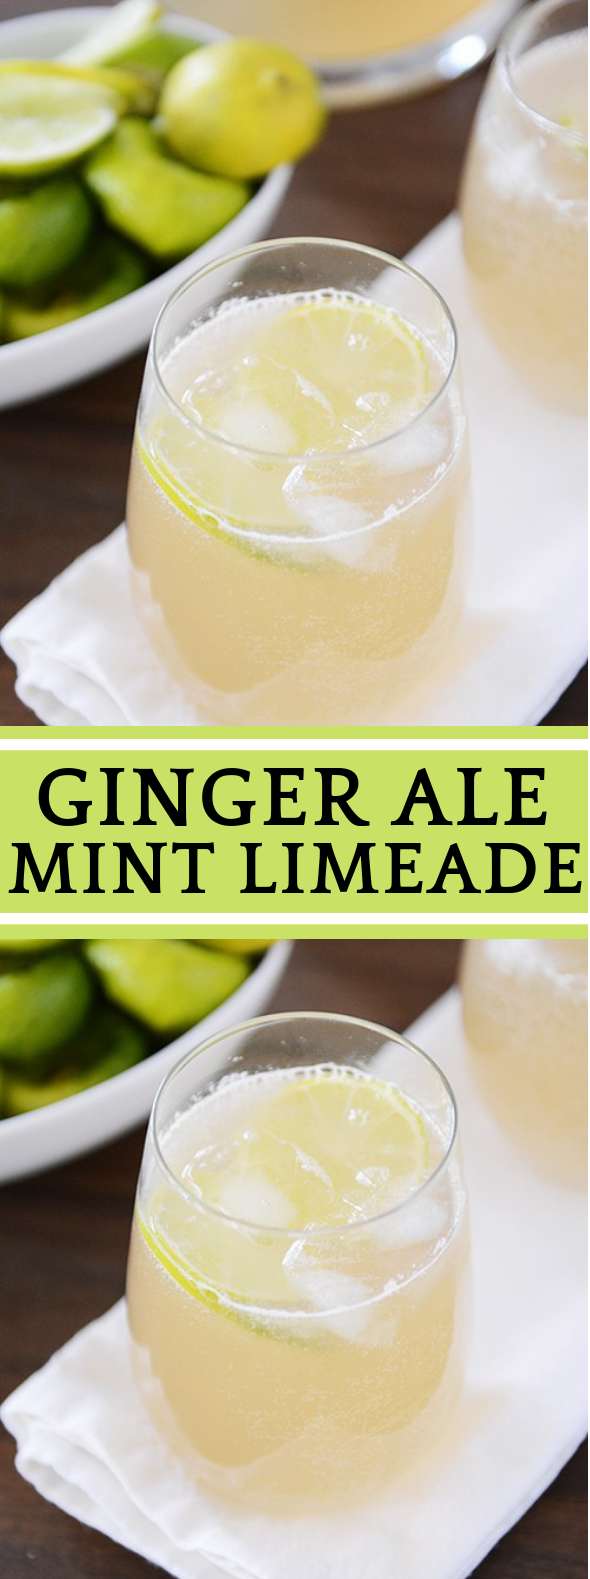 GINGER ALE MINT LIMEADE #drink #lime